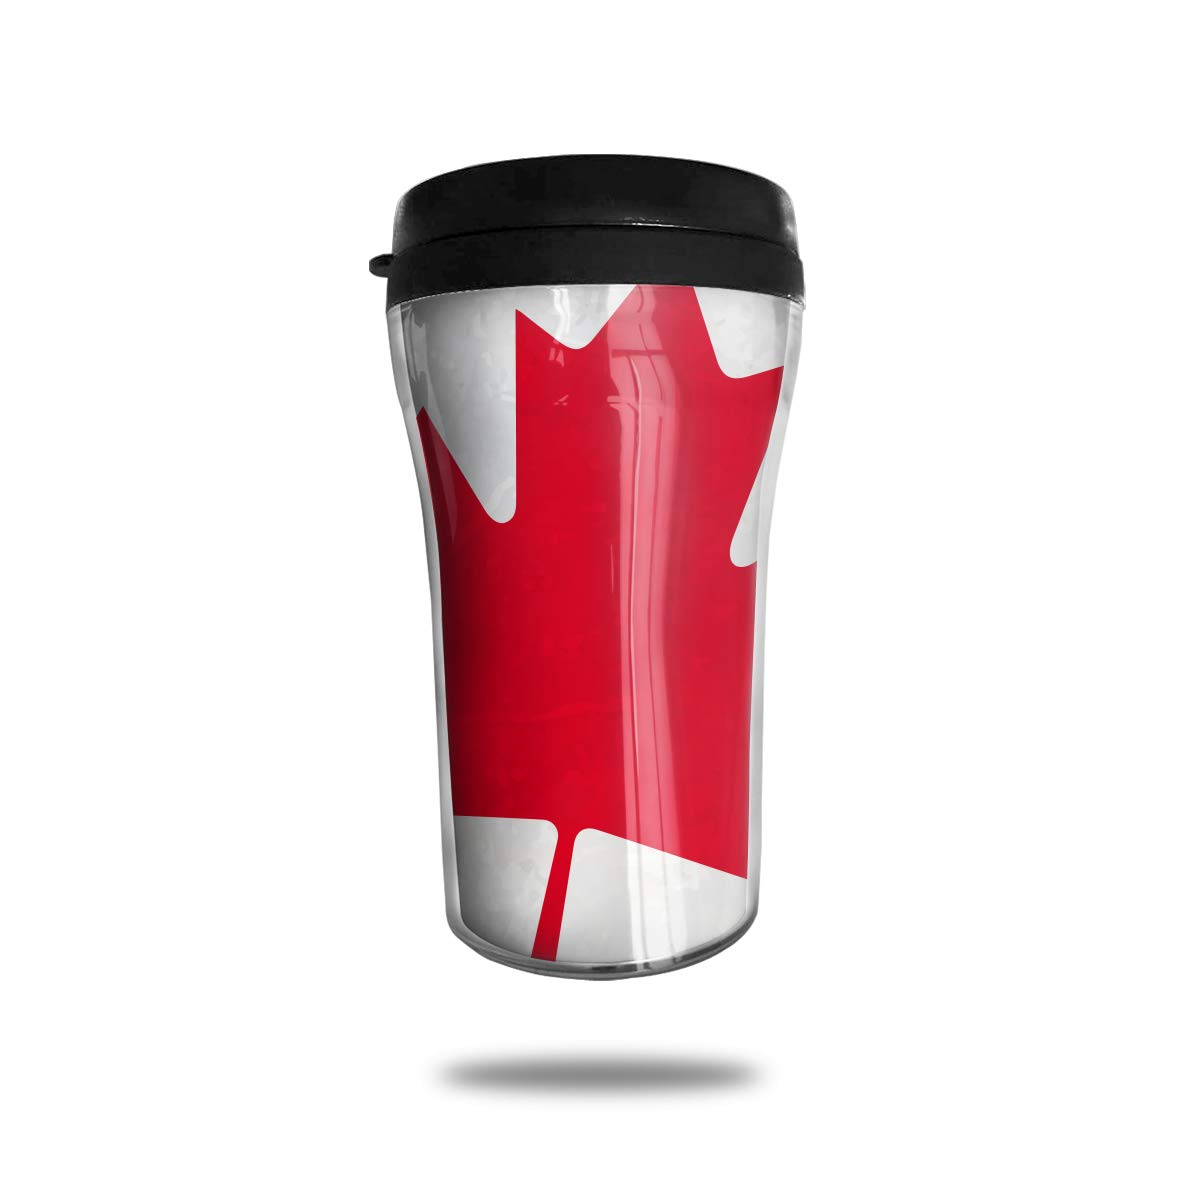 FTRGRAFE Canada Flag Travel Coffee Mug 3D Printed Portable Vacuum Cup,Insulated Tea Cup Water Bottle Tumblers for Drinking with Lid 8.54 Oz (250 Ml)